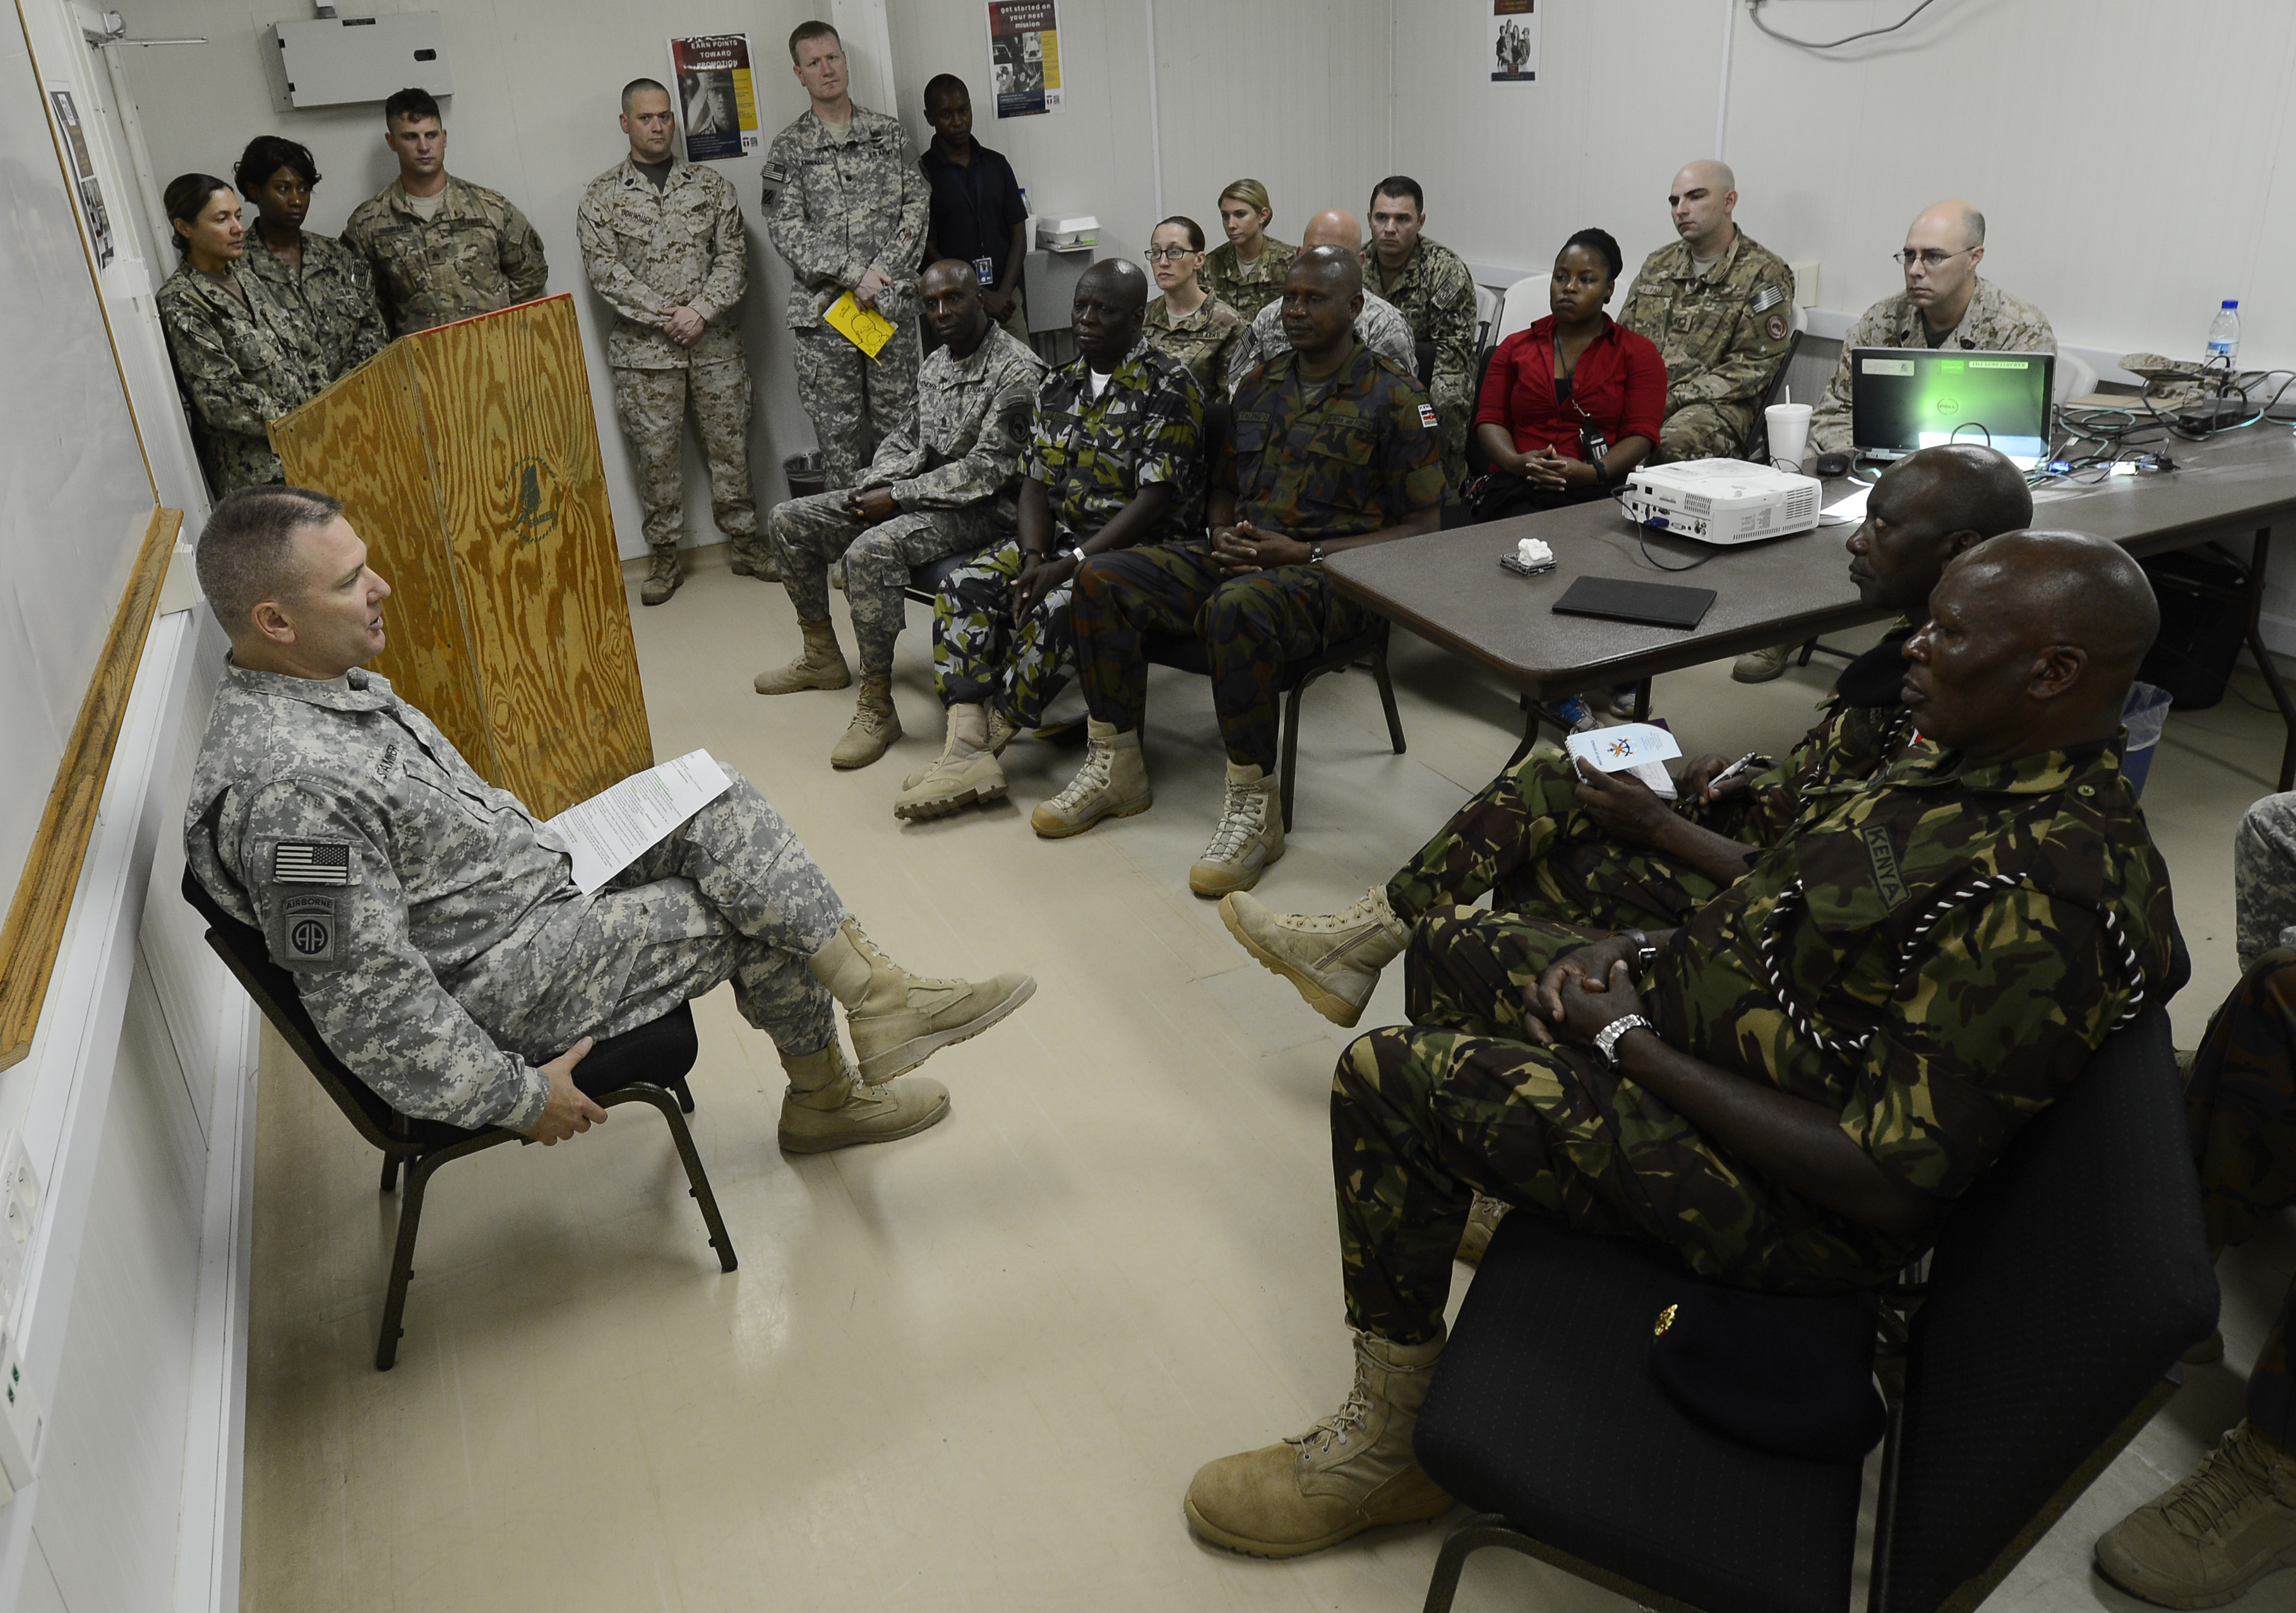 U.S. Army Maj. Gen. Mark Stammer, Combined Joint Task Force-Horn of Africa commanding general, speaks with sergeants major from the Kenya Defence Forces Feb. 10, 2016, at Camp Lemonnier, Djibouti. Kenya is one of the five troop contributing countries to the African Union Mission in Somalia, and is the second largest of the three countries bordering Somalia. (U.S. Air Force photo by Senior Airman Peter Thompson)